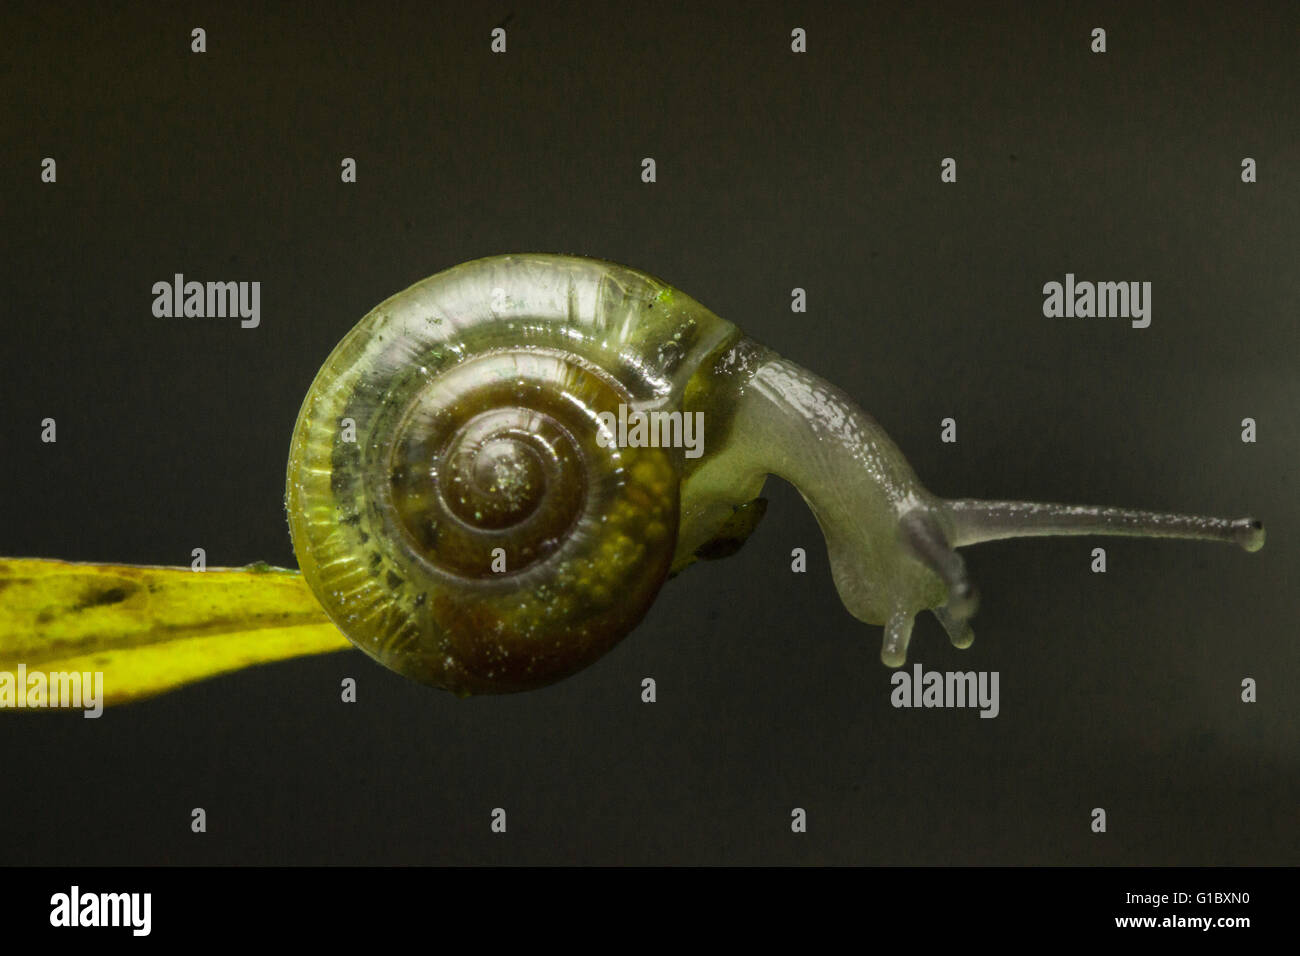 L'Escargot nerveux Photo Stock